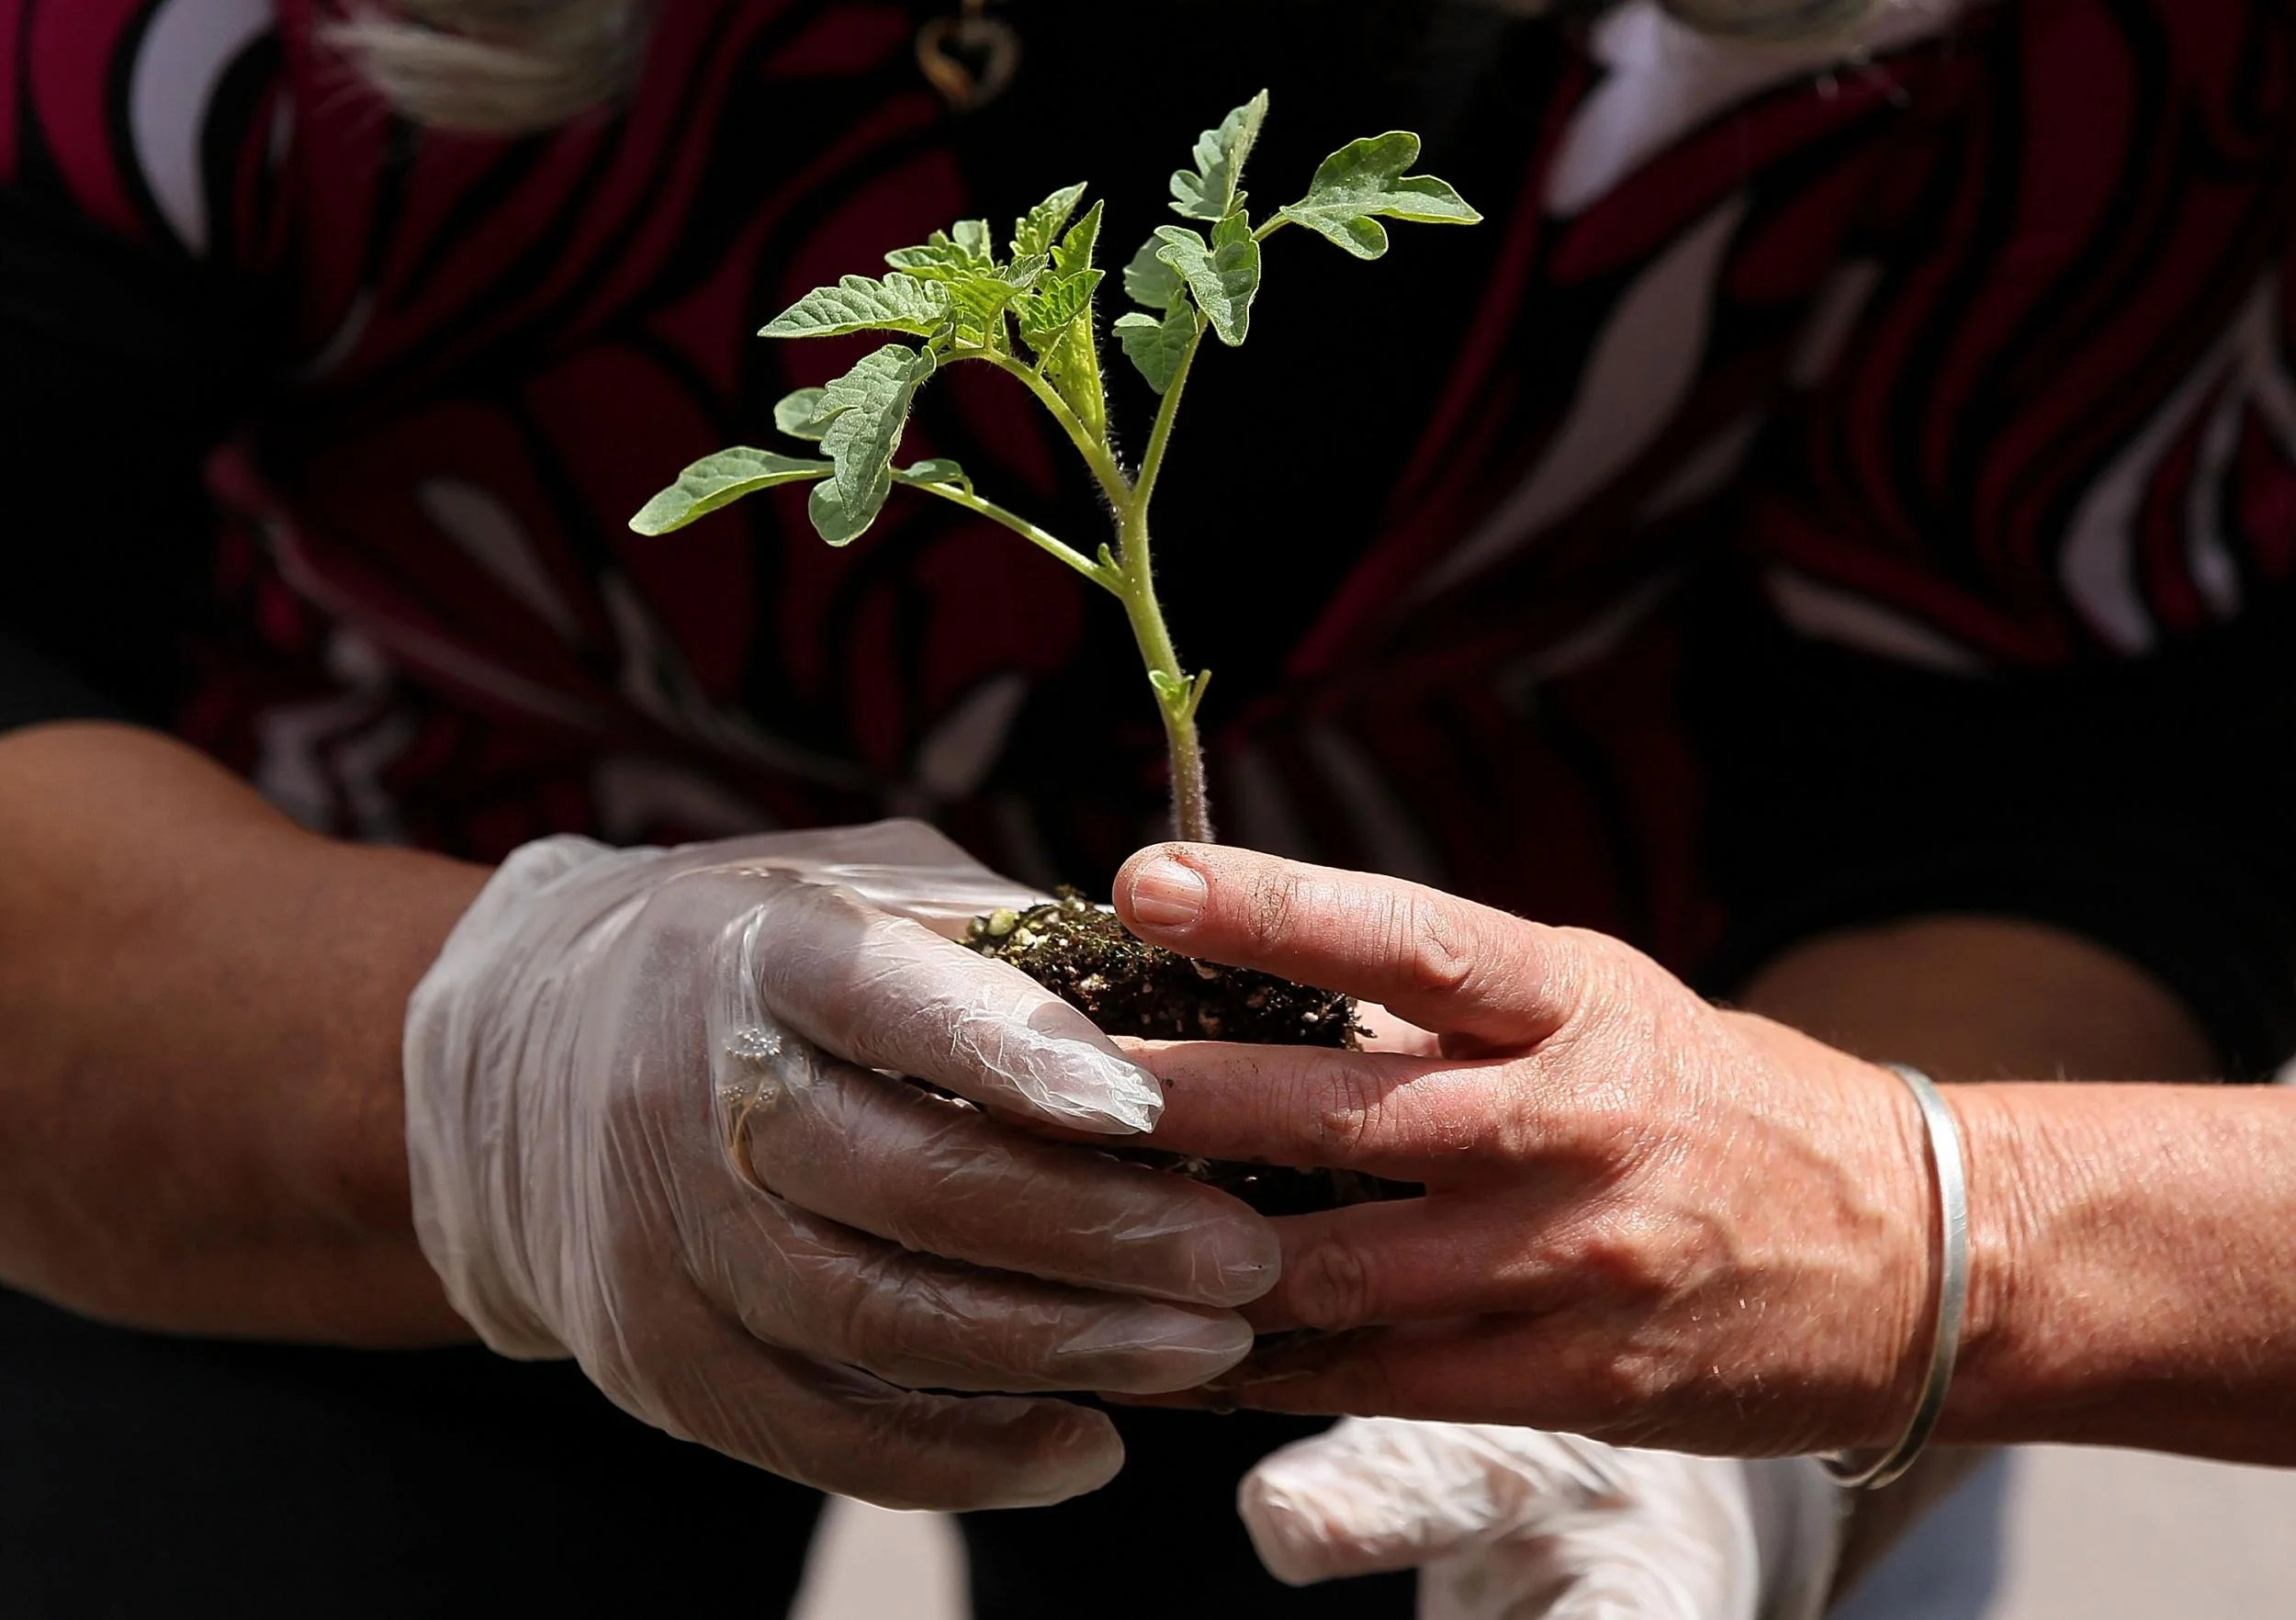 Earth Day Five Simple Things You Can Do To Help Make Our Planet Greener